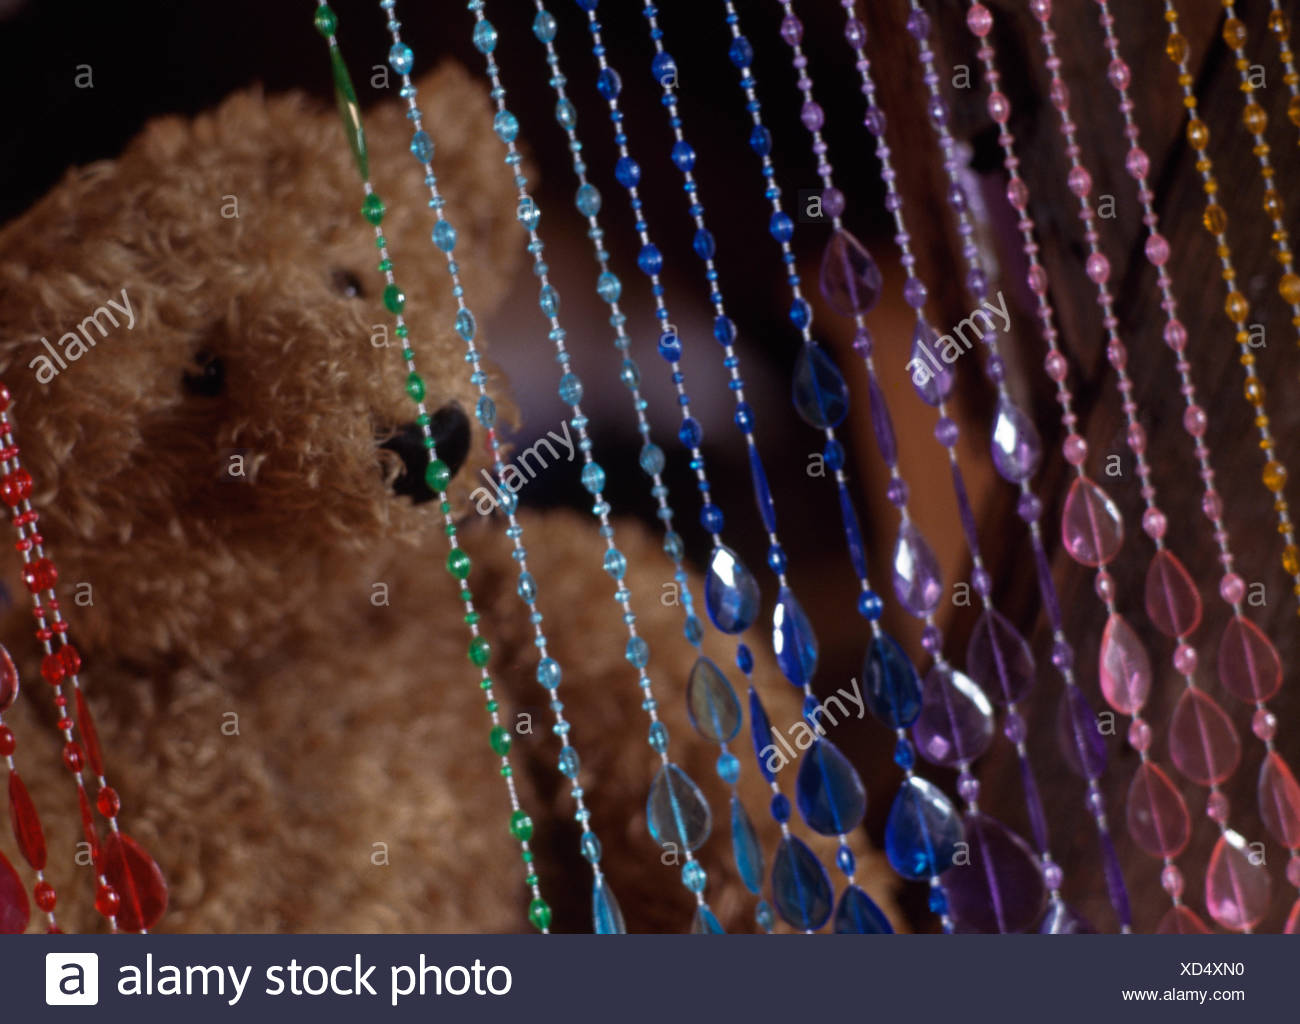 Close-up of a beaded curtain and a teddy bear - Stock Image